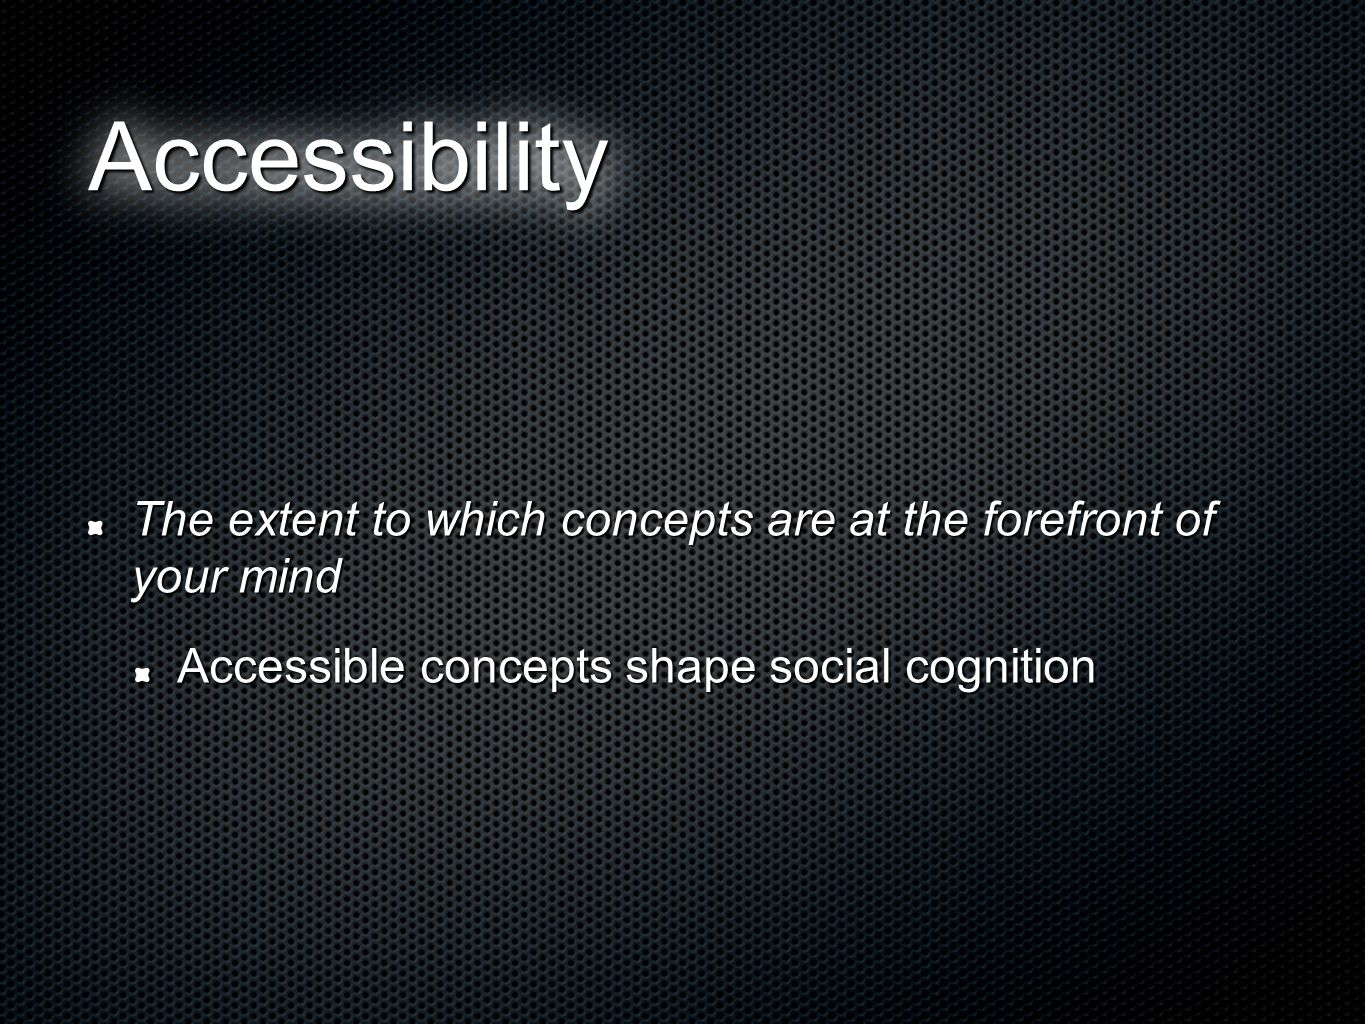 AccessibilityAccessibility The extent to which concepts are at the forefront of your mind Accessible concepts shape social cognition